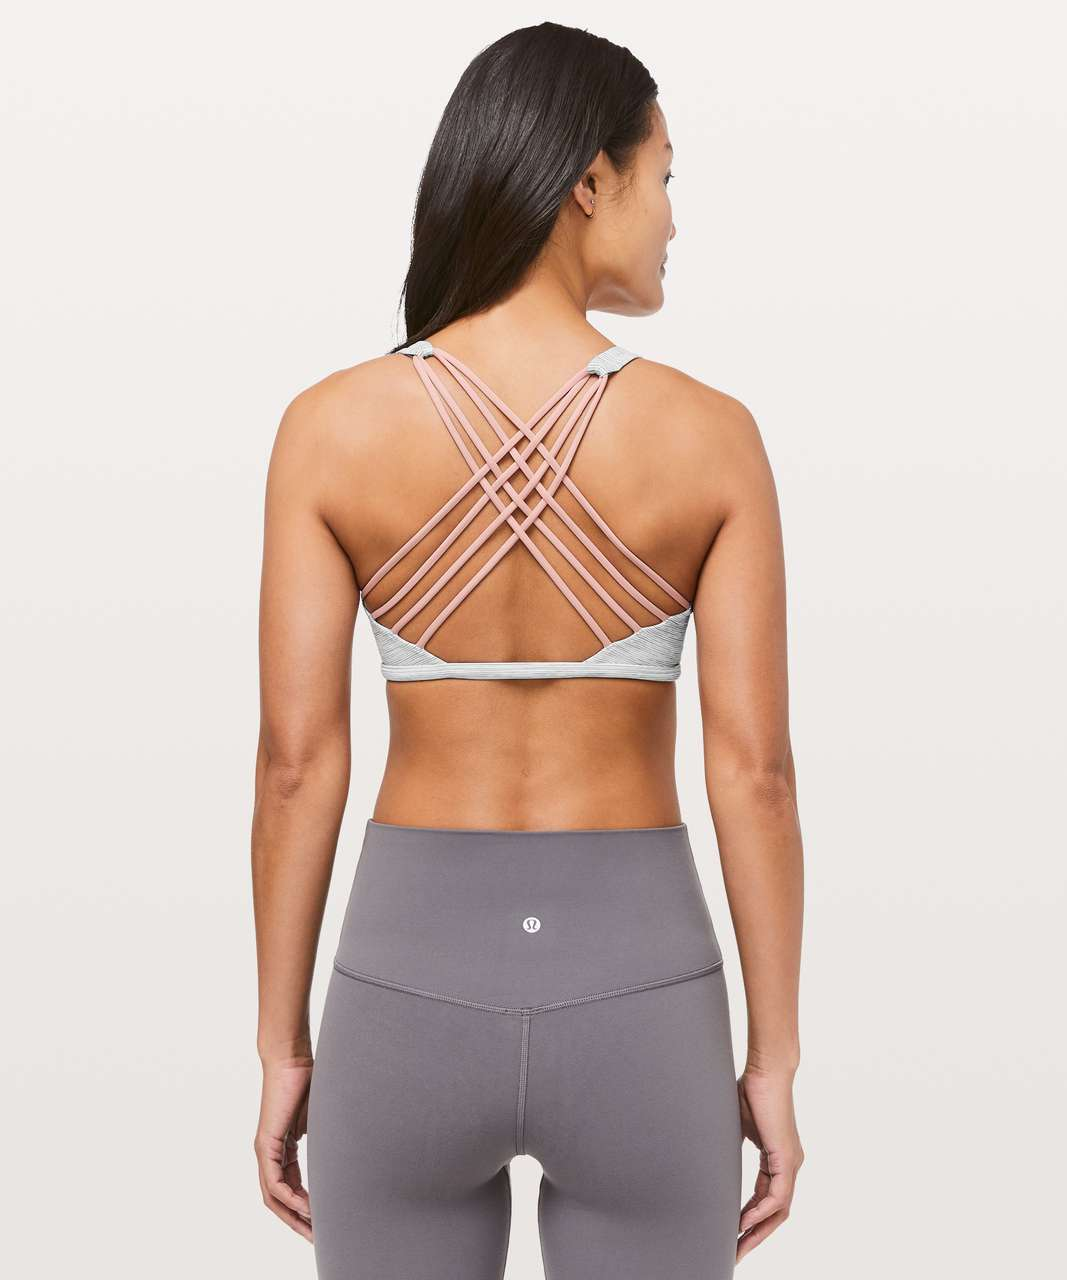 Lululemon Free To Be Bra (Wild) - Wee Are From Space Nimbus Battleship / Faint Coral